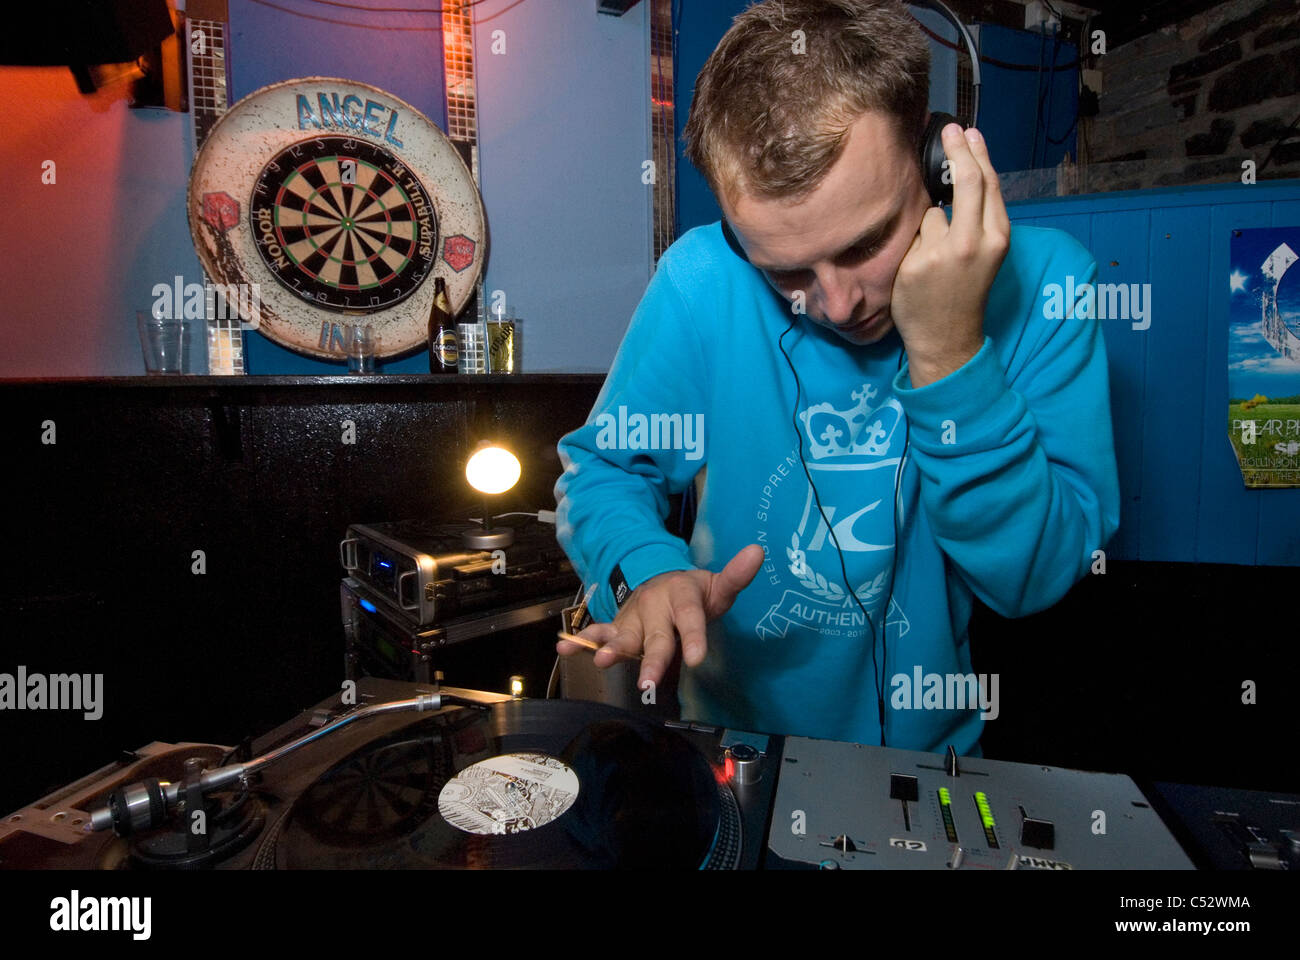 A young DJ scratching some vinyl on his decks - Stock Image